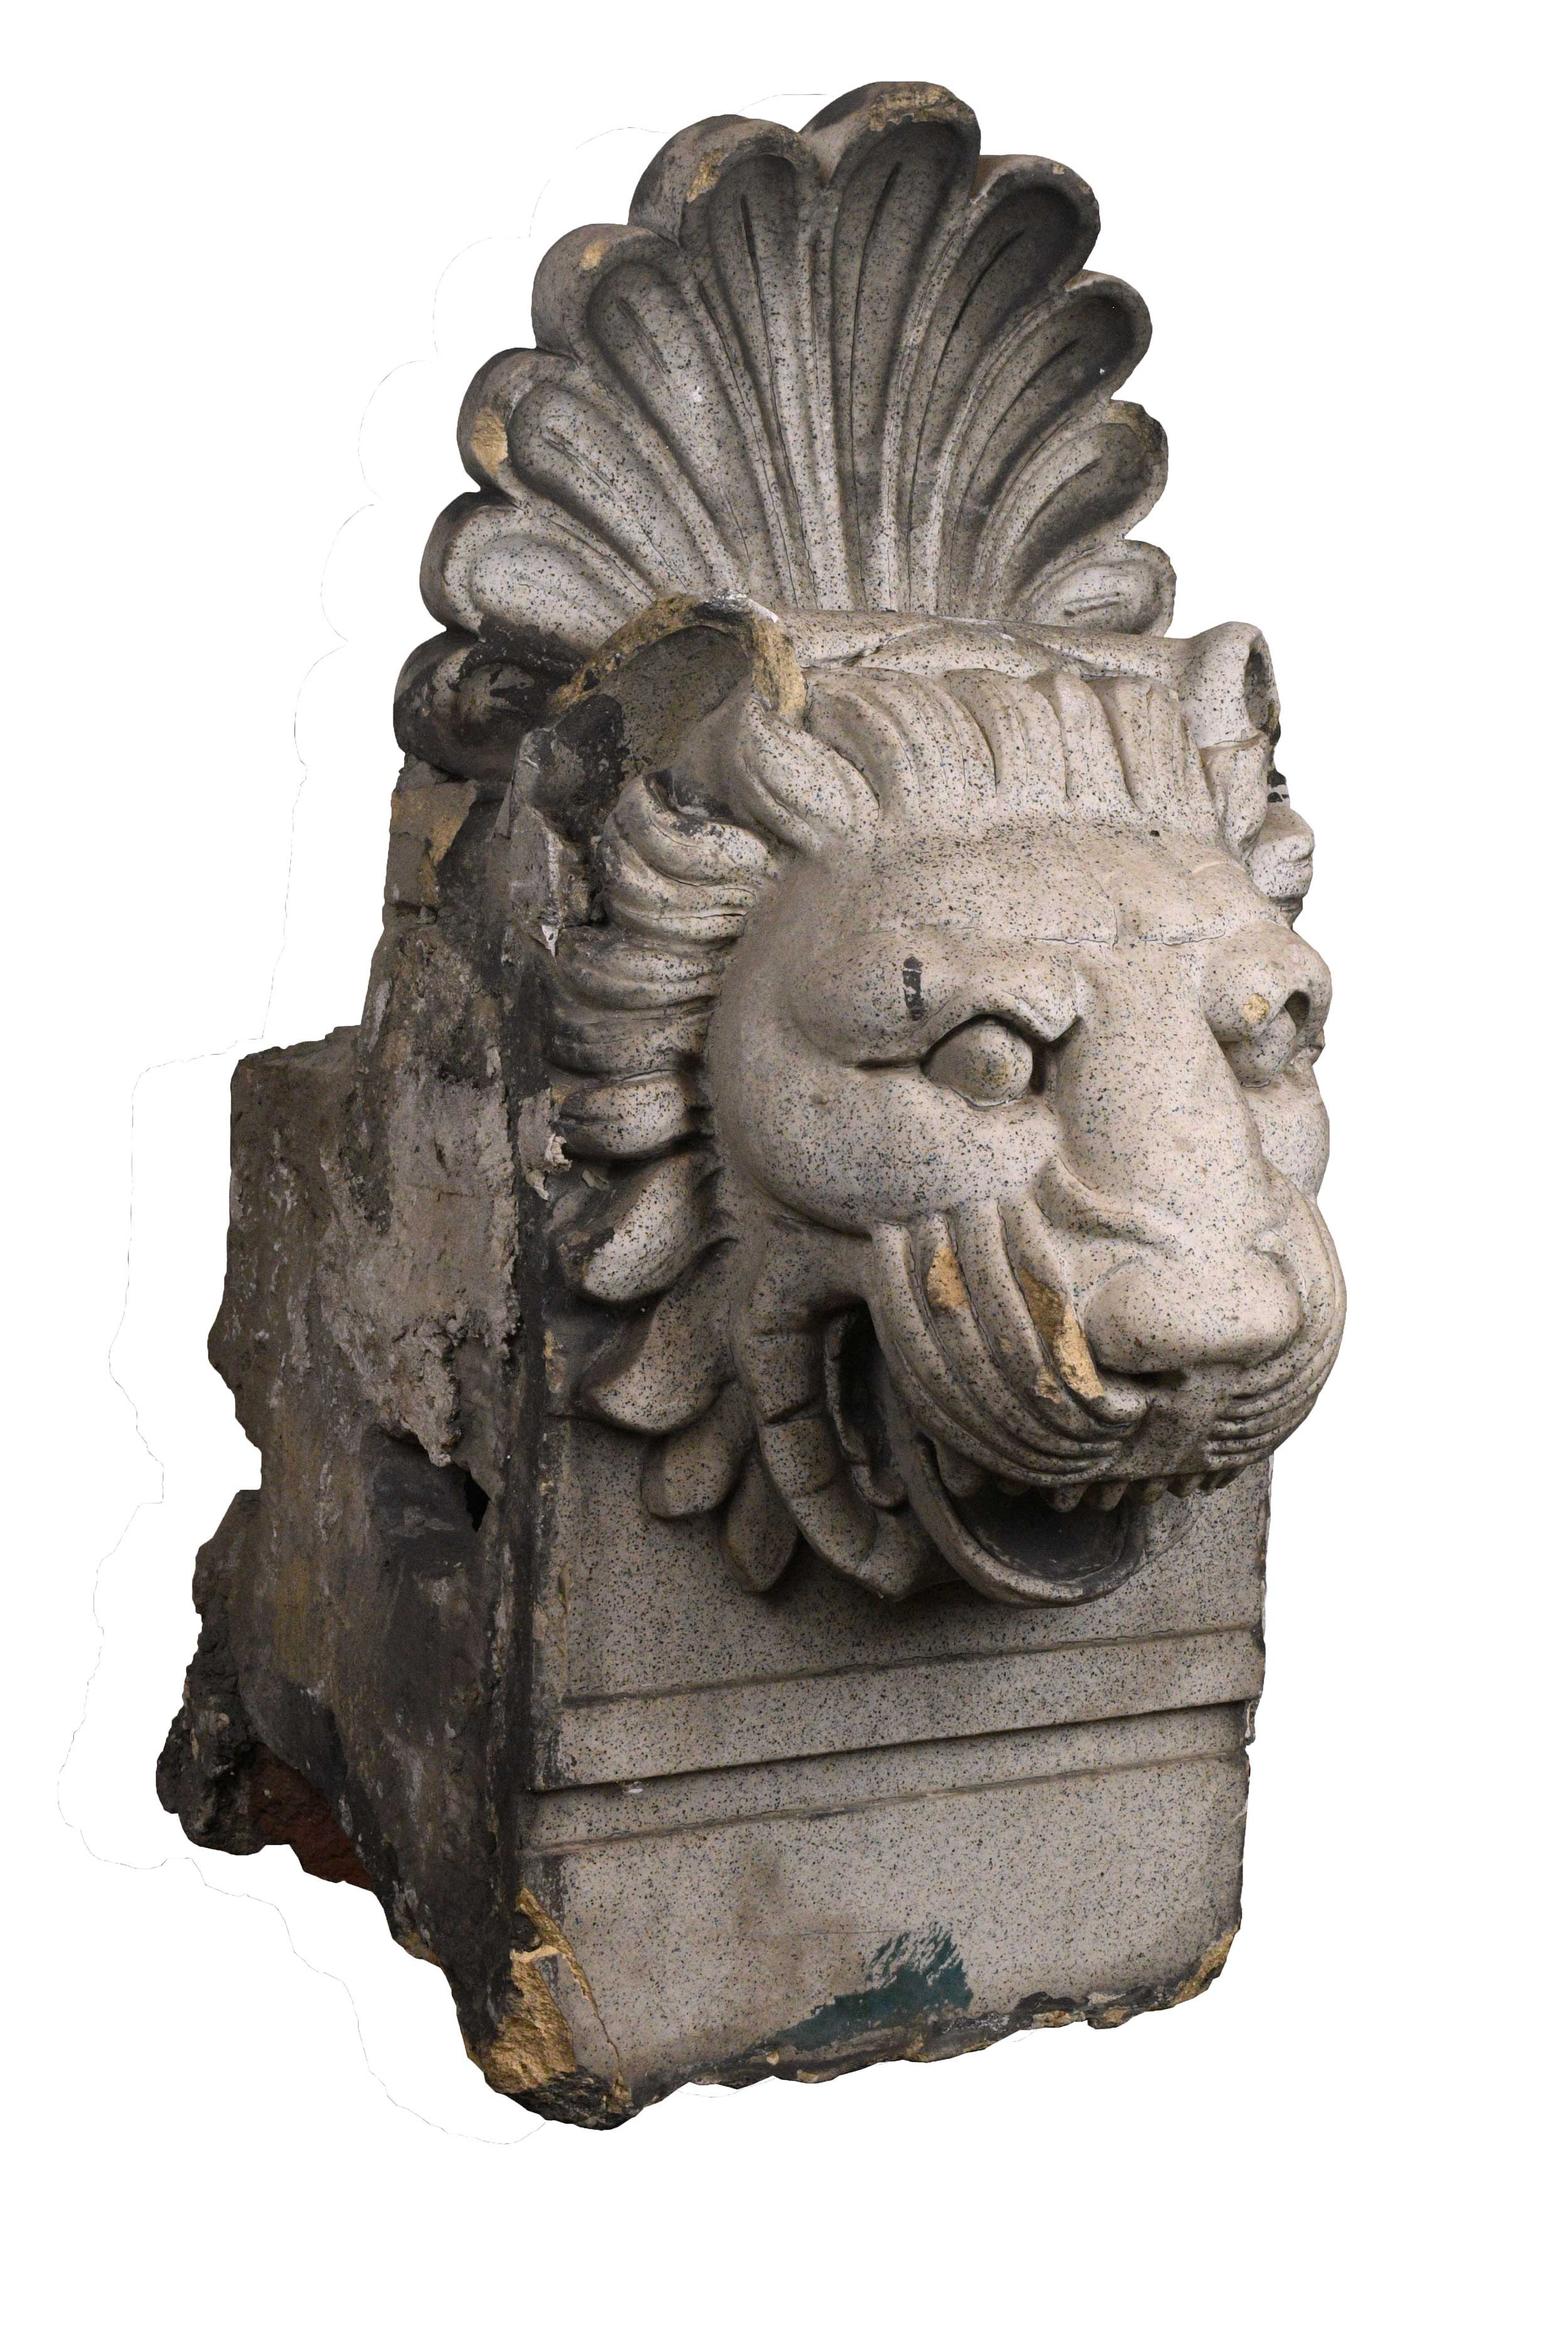 47962-stone-lion-building-ornament_side-edit.jpg